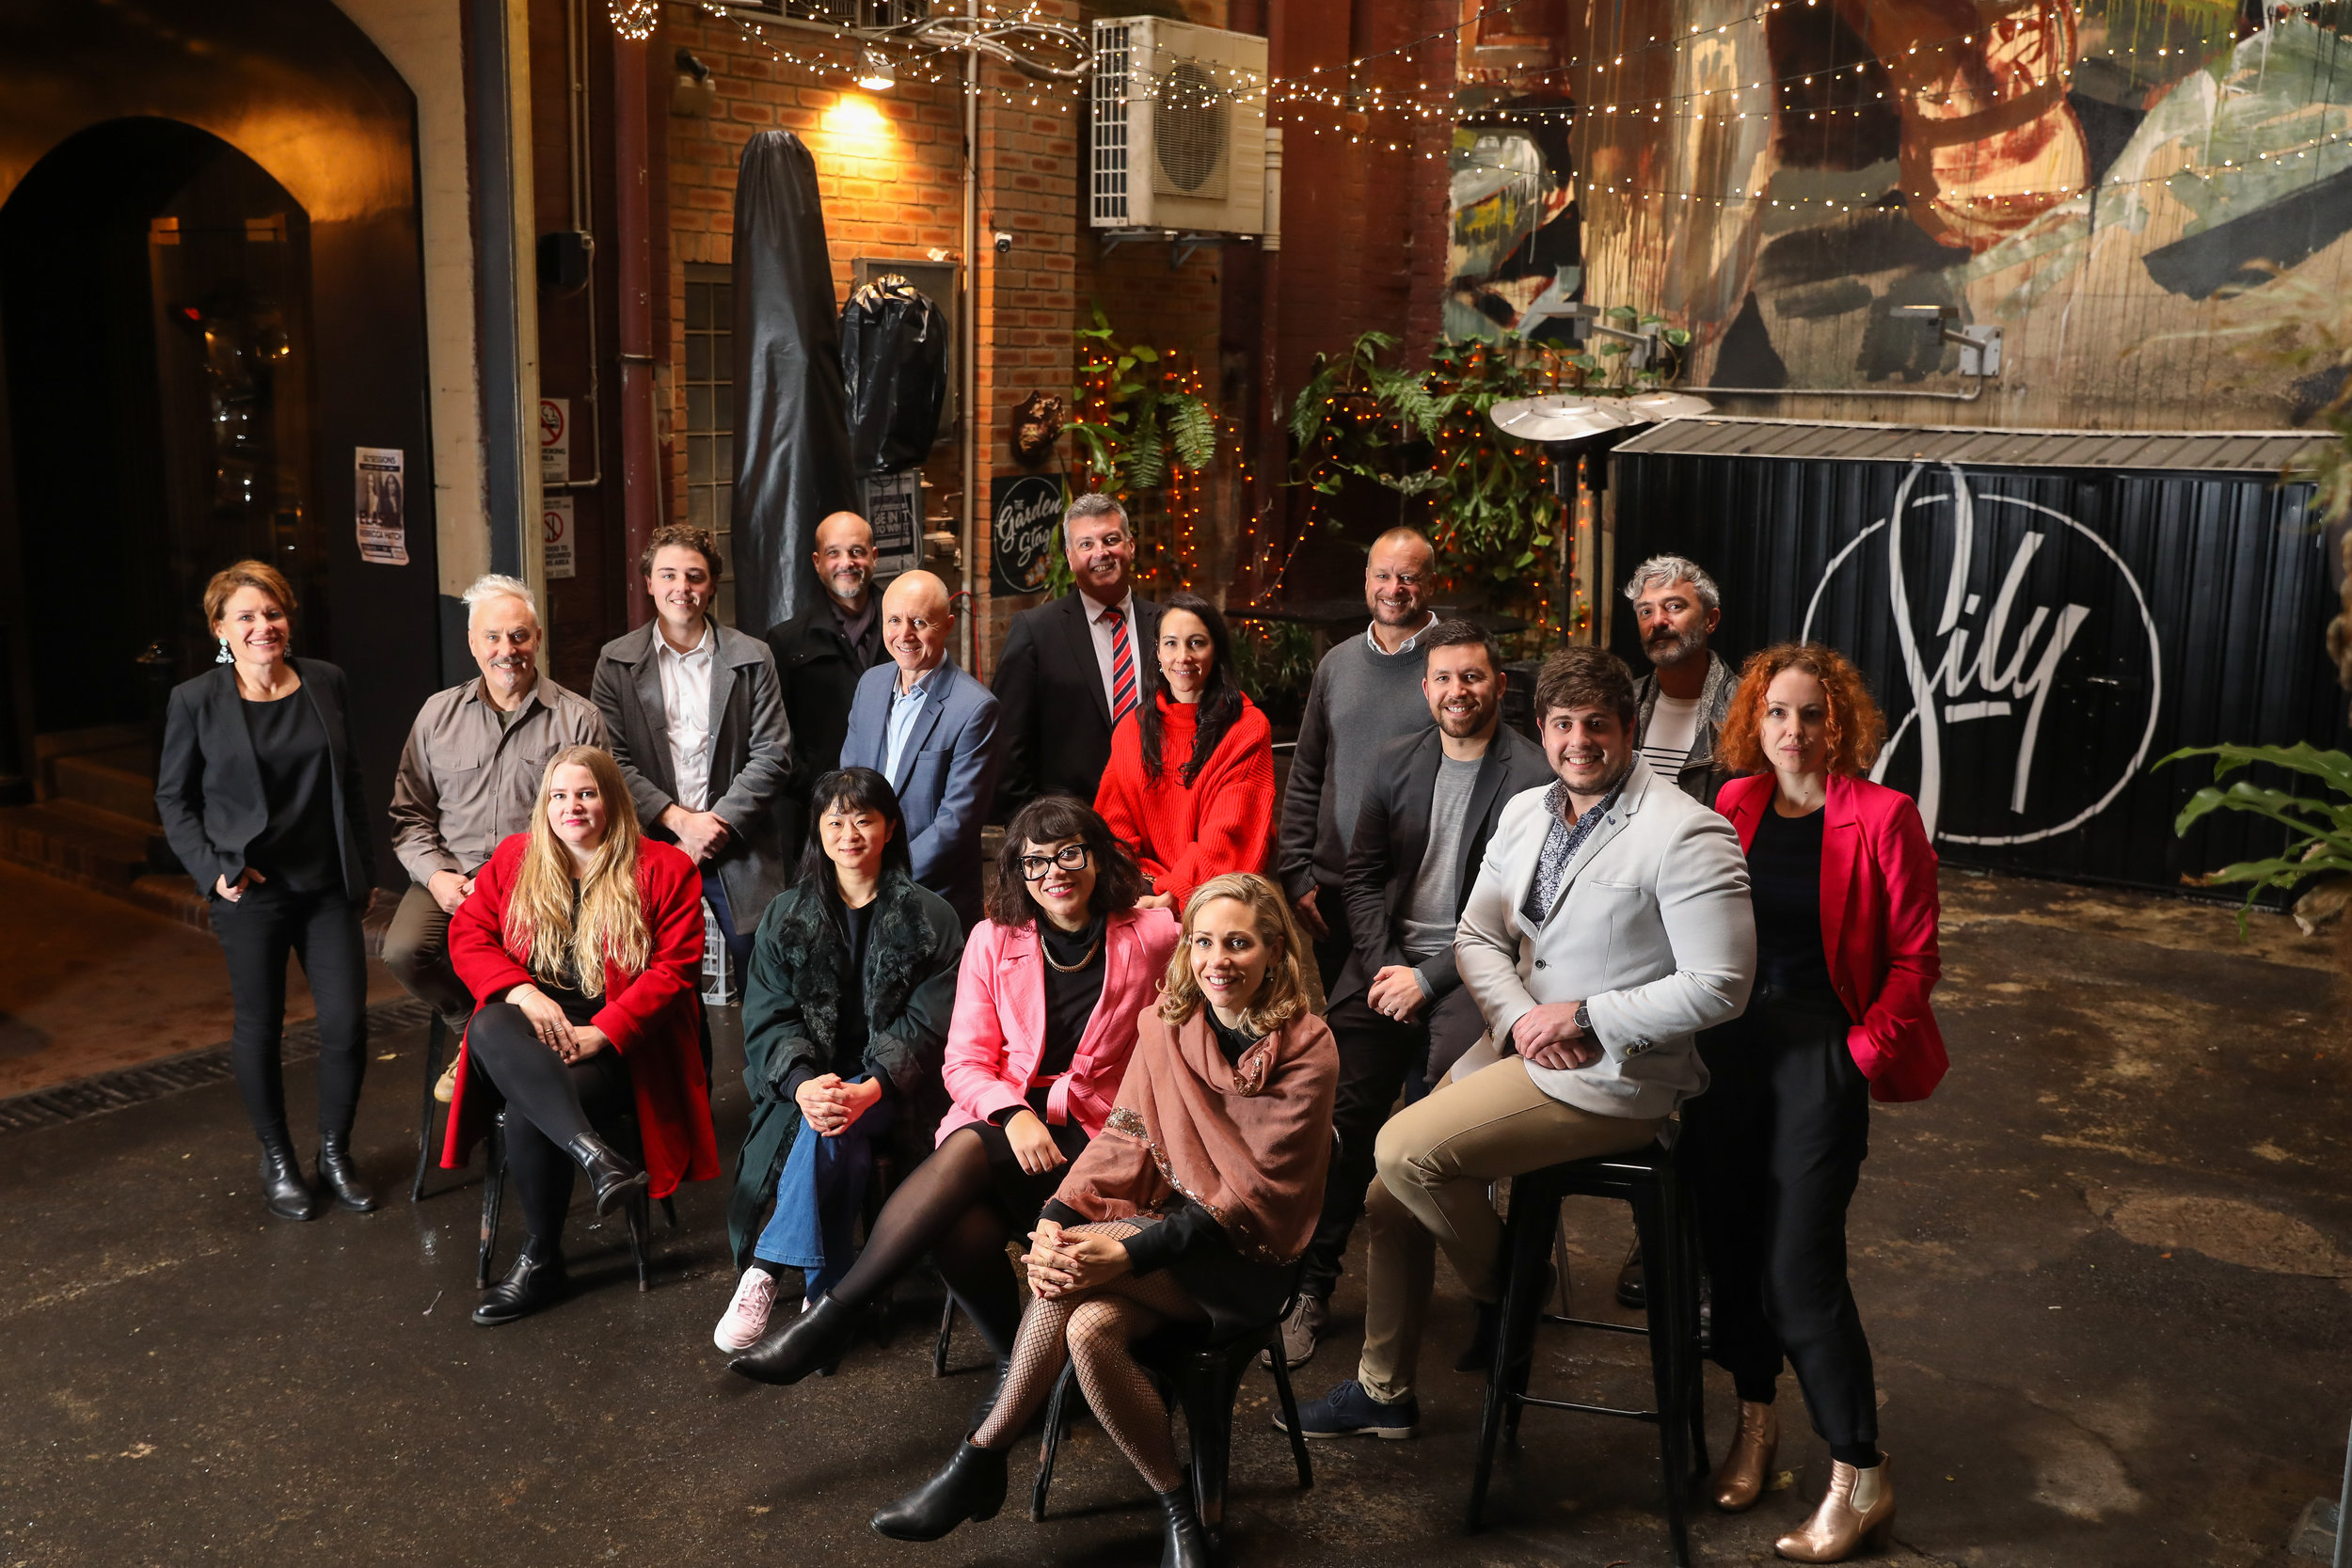 Nightlife and Creative Sector Advisory Panel. Image Credit: City of Sydney